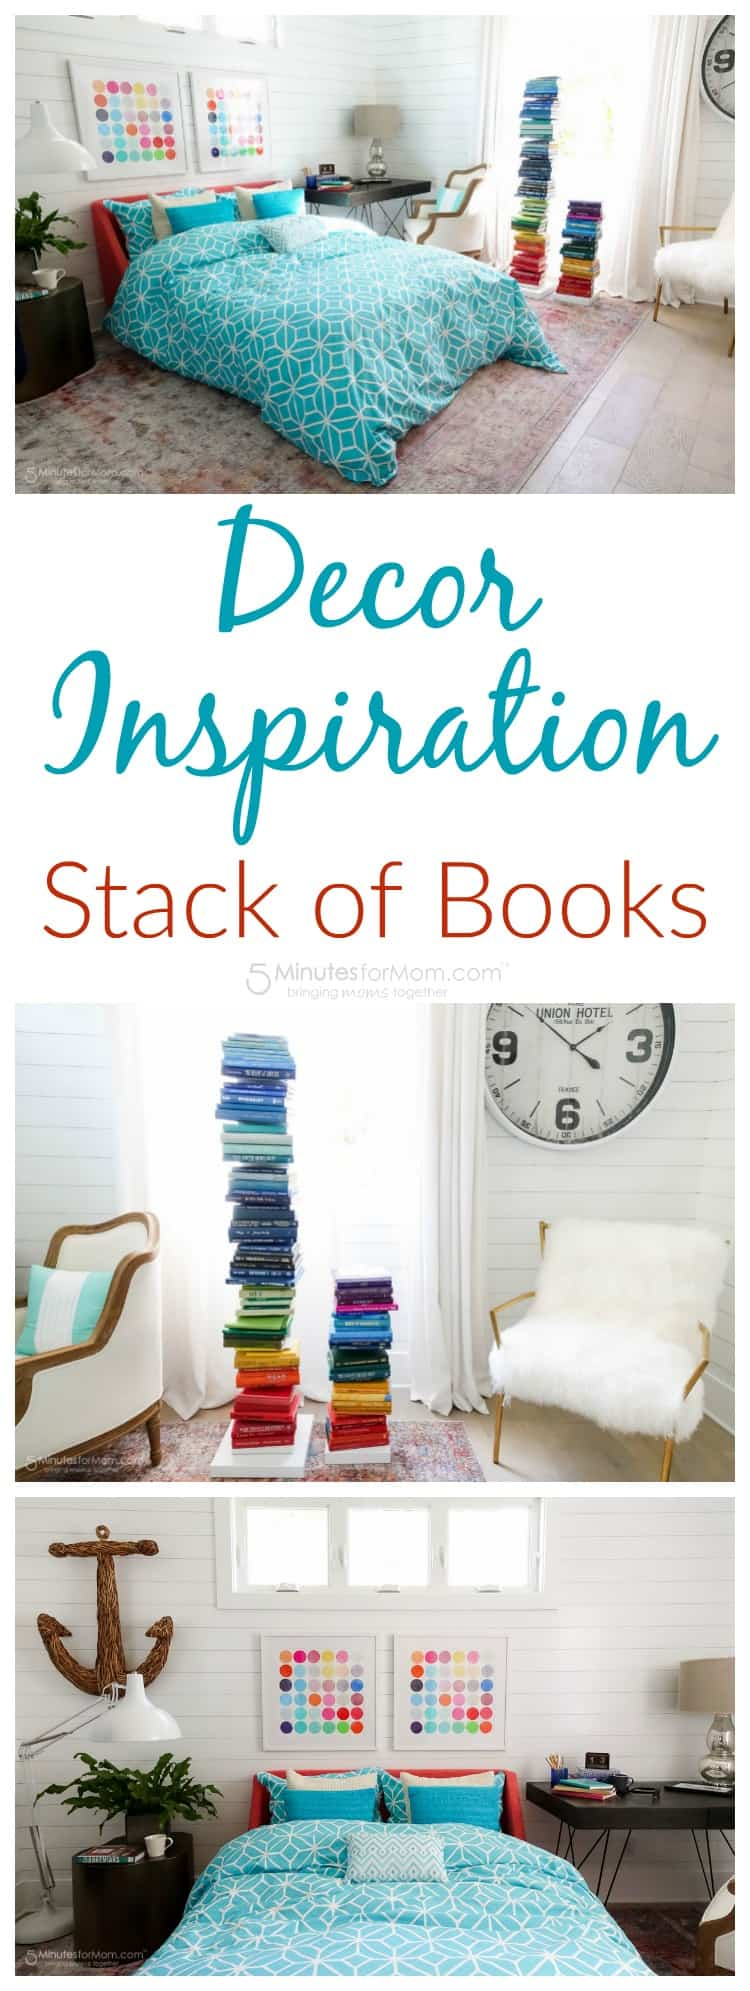 Decor Inspiration - Stack of Books